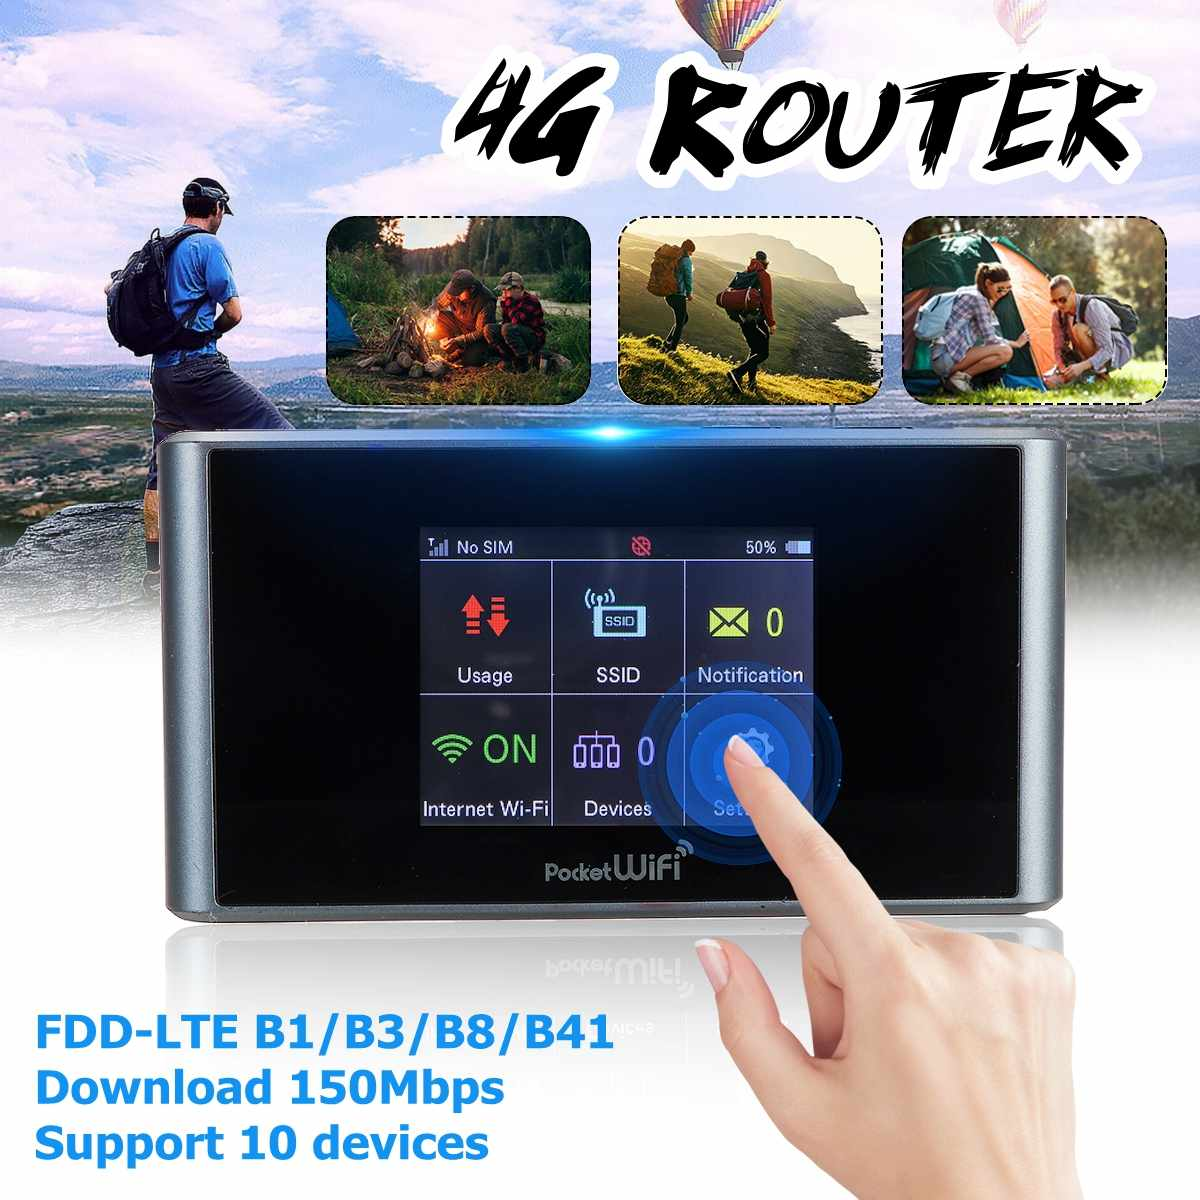 4G Wireless Router  Support SIM Card portable WIFI 4g-900/2100MHz 3g-900/1700/1900MHz 150Mbps4G Wireless Router  Support SIM Card portable WIFI 4g-900/2100MHz 3g-900/1700/1900MHz 150Mbps